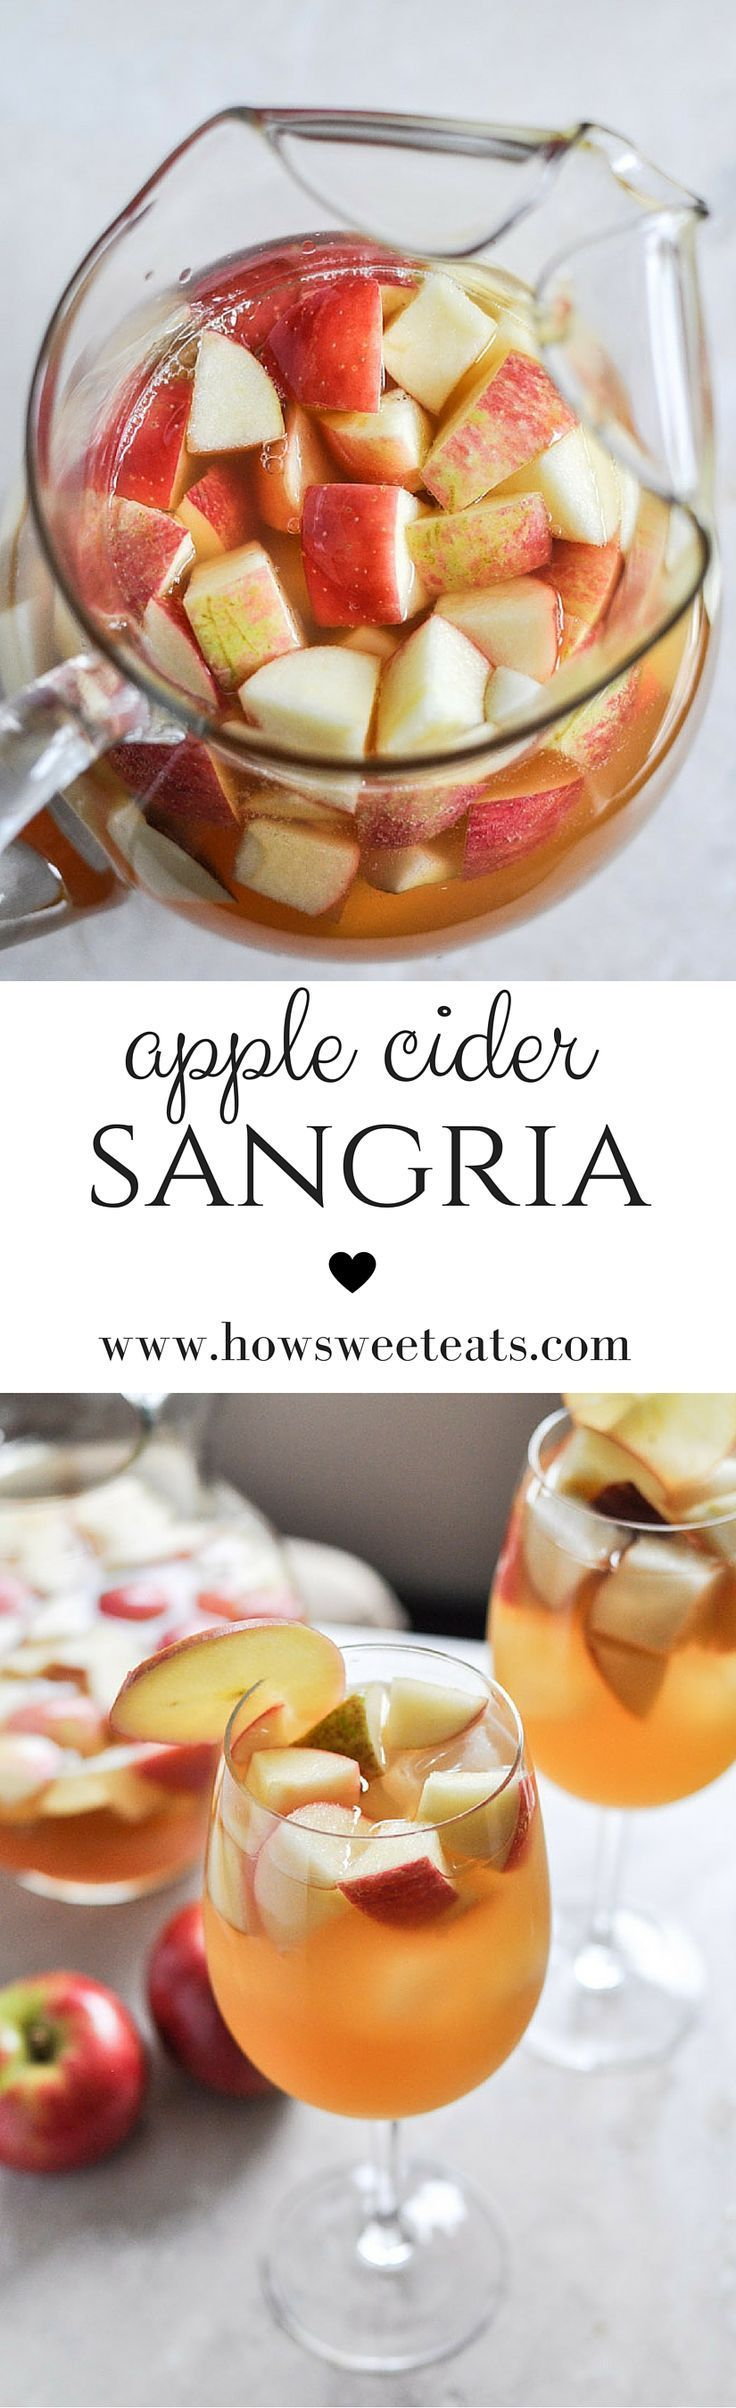 the BEST Apple Cider Sangria by /howsweeteats/ I http://howsweeteats.com